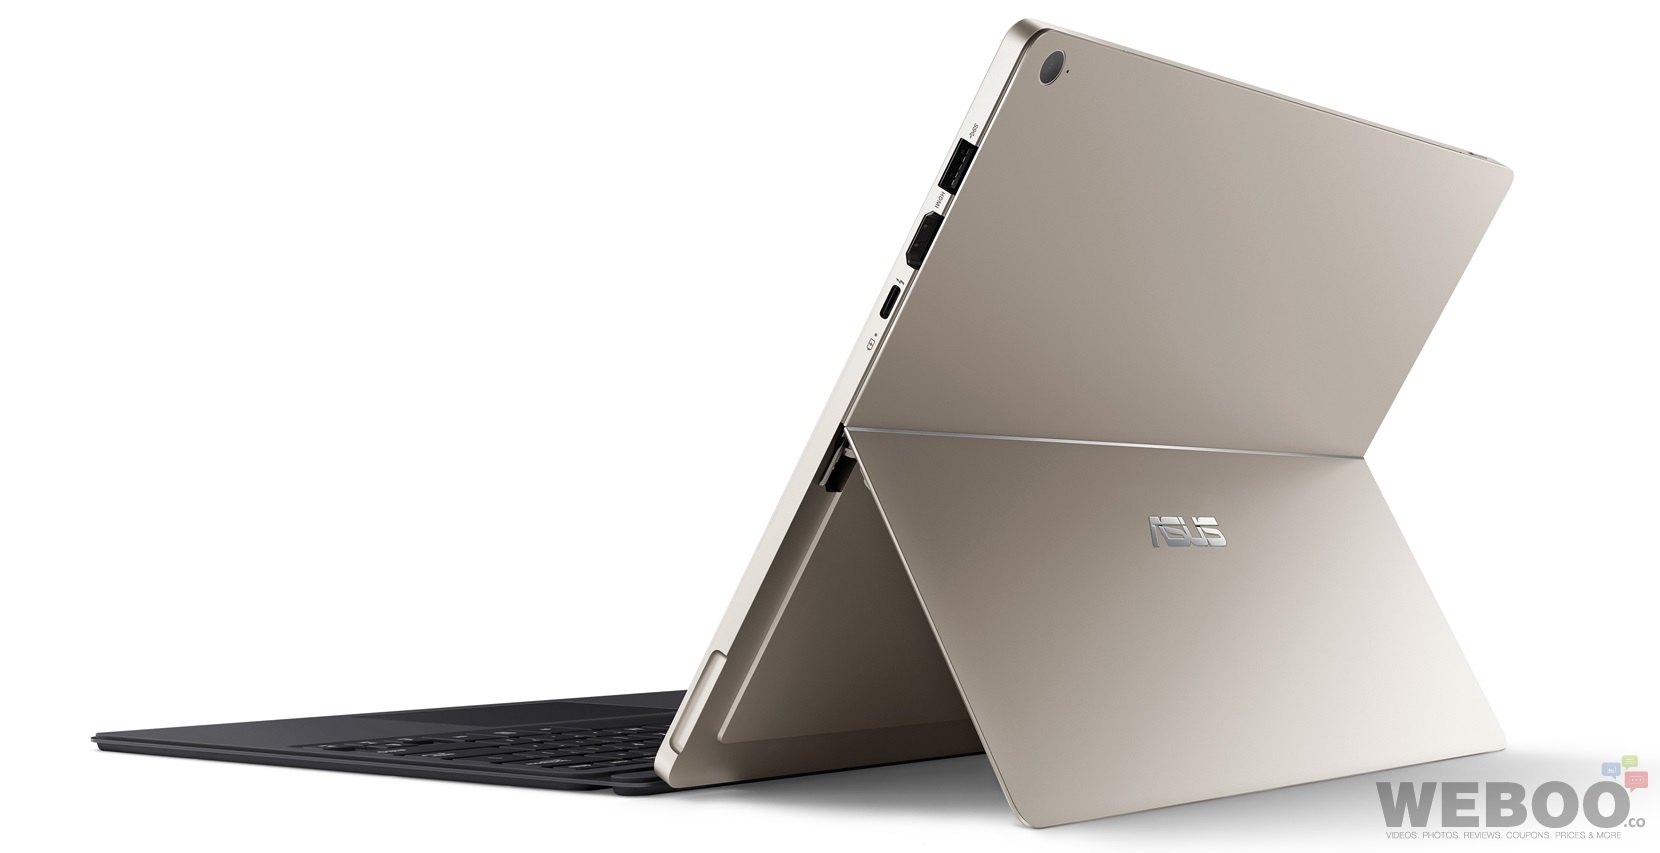 ASUS Transformer 3 Pro Stylish, Ultra-Slim & Compact 2-in-1 PC Weboo-co-2